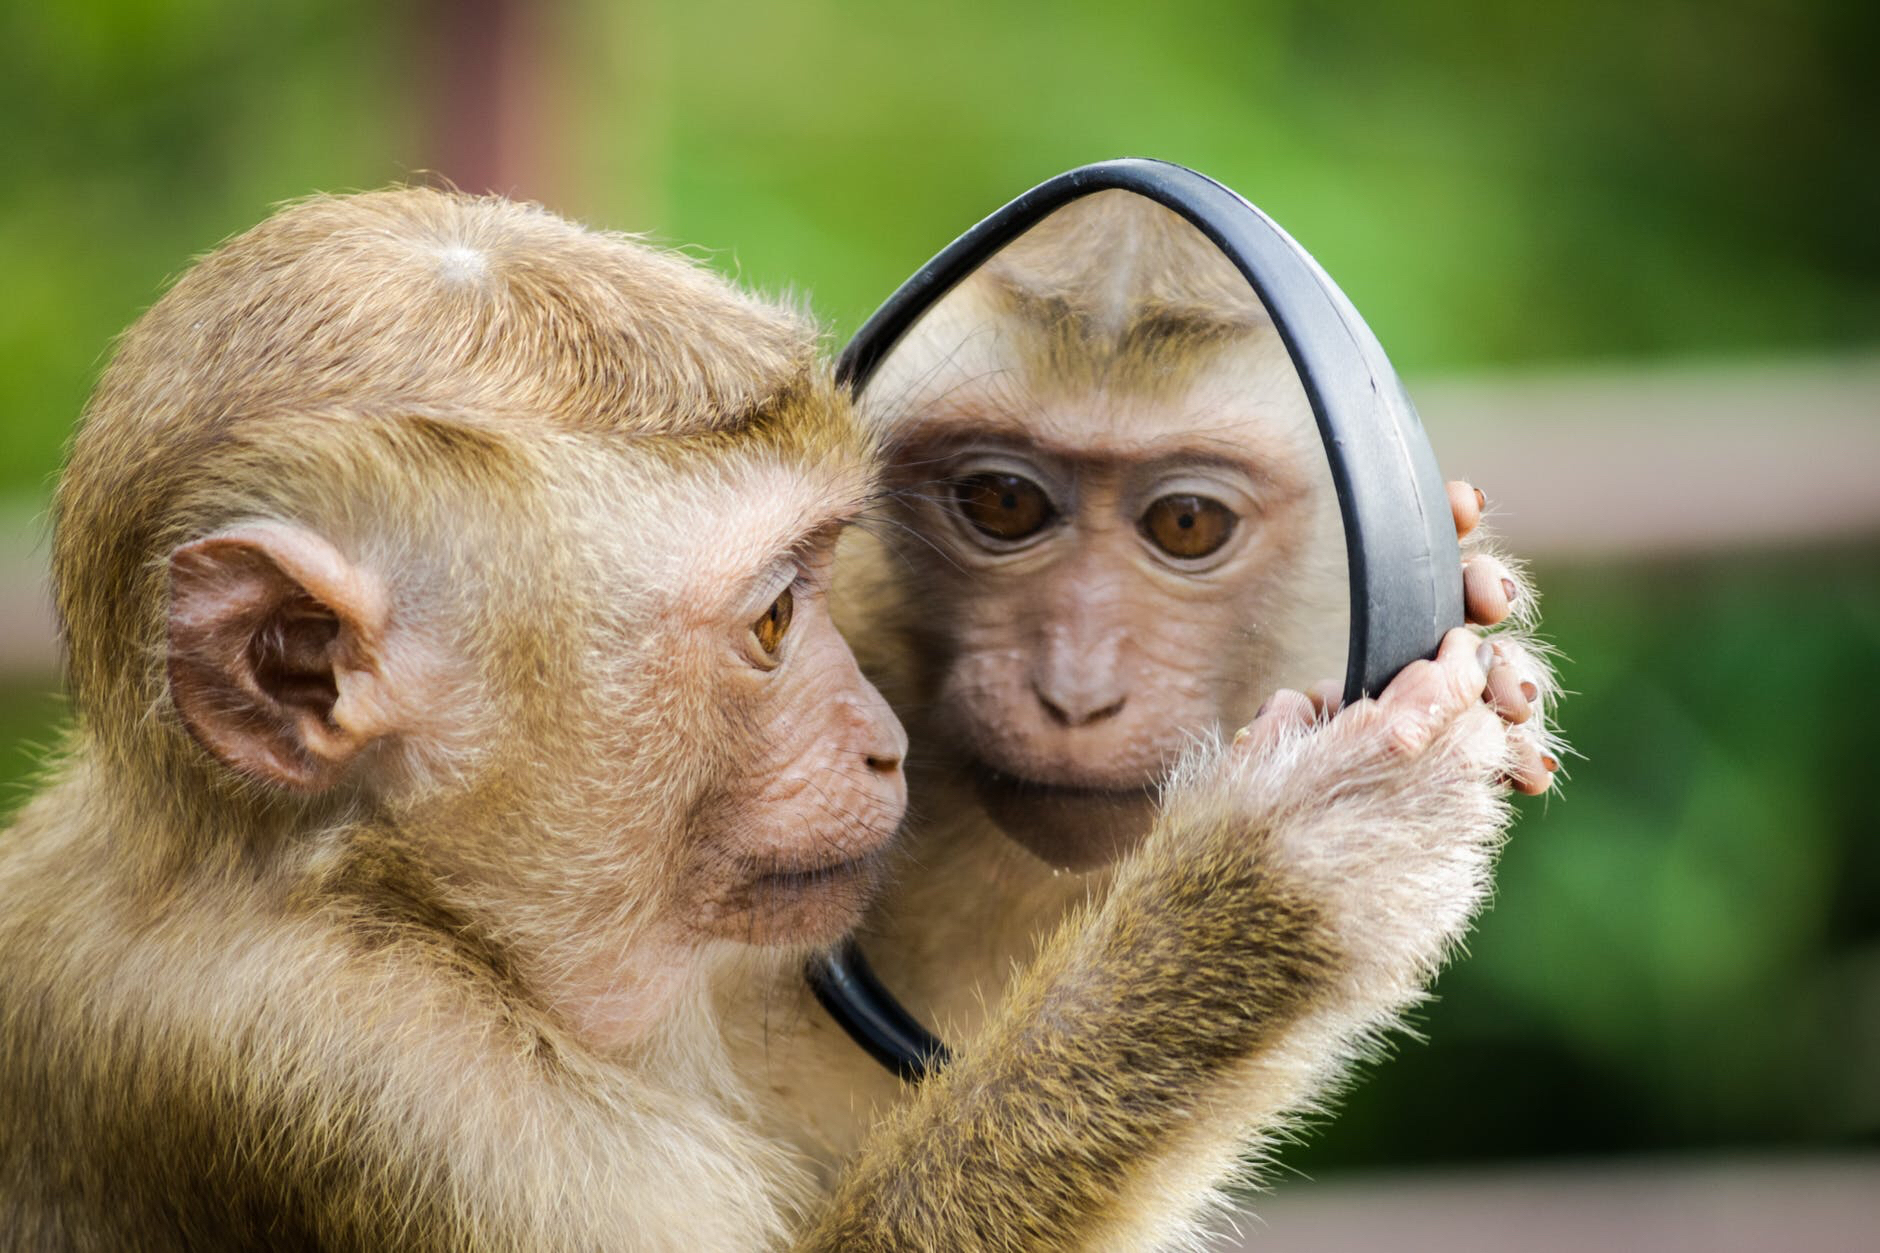 Monkey looks in the mirror